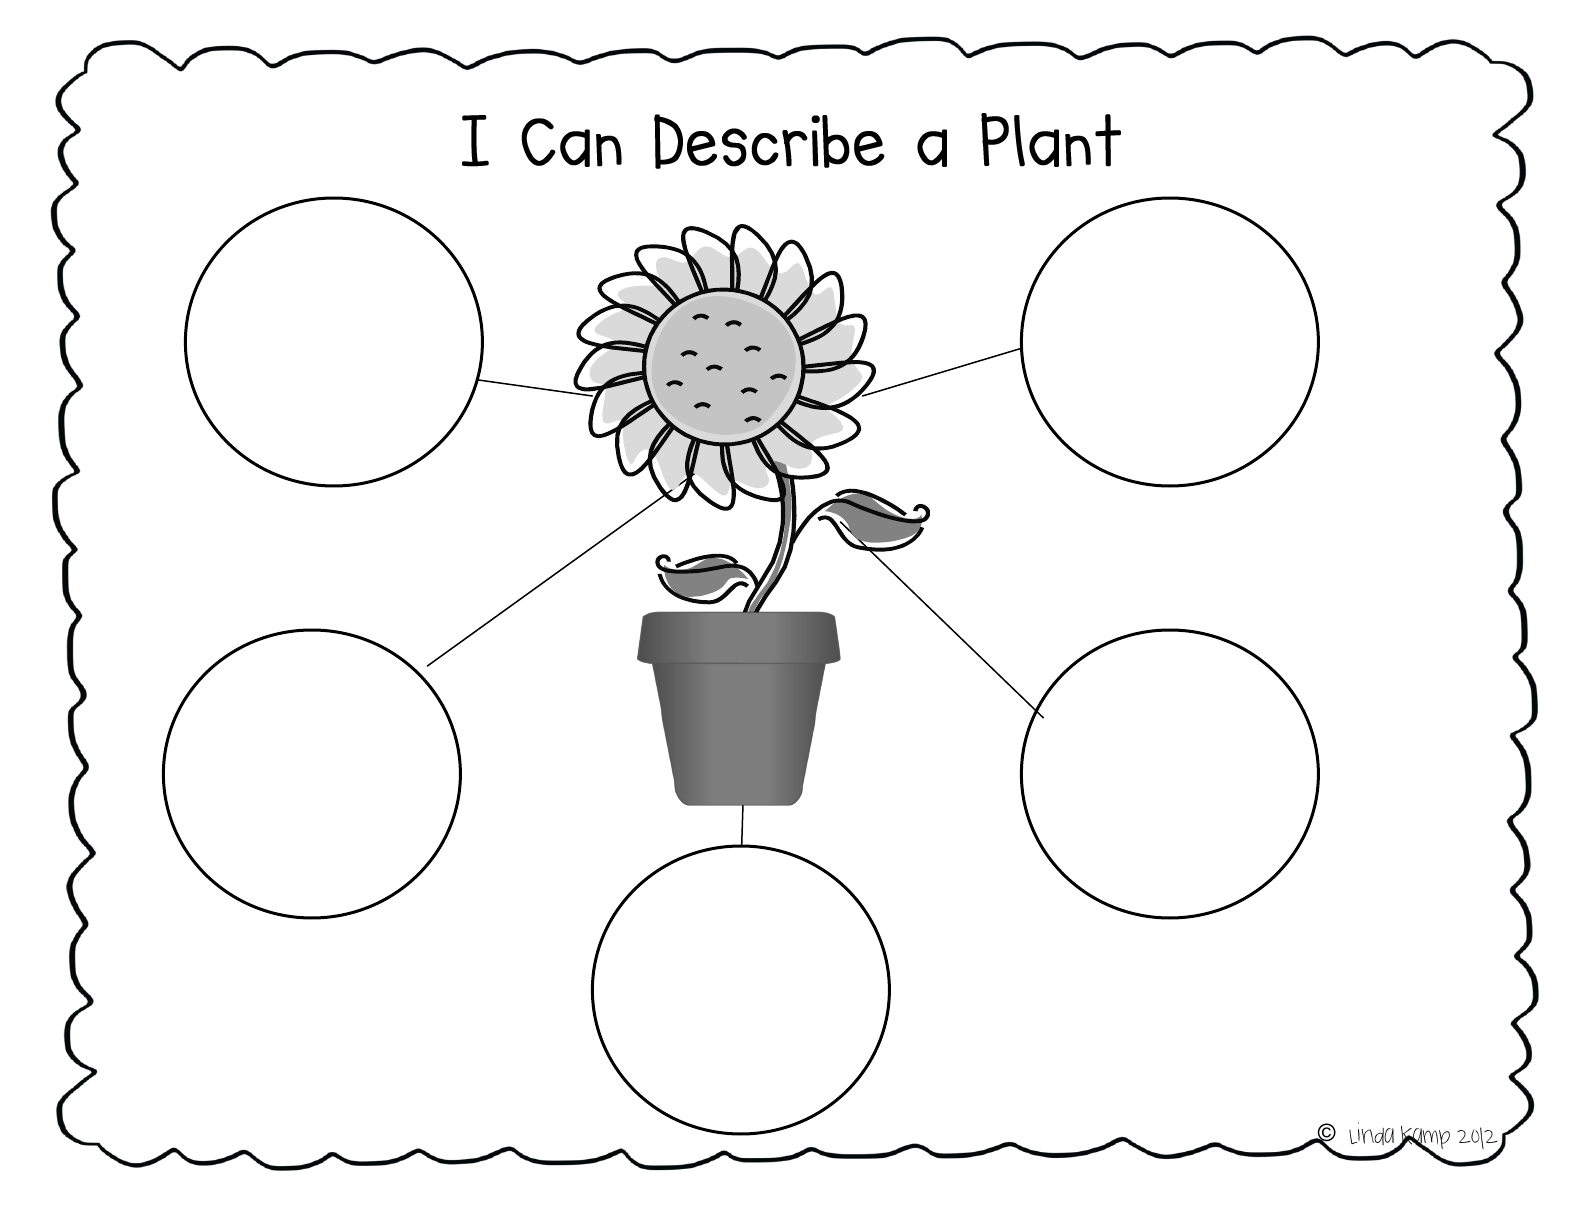 Worksheet 564729 Plant Worksheets for Kindergarten Children – Plant Worksheets for Kindergarten